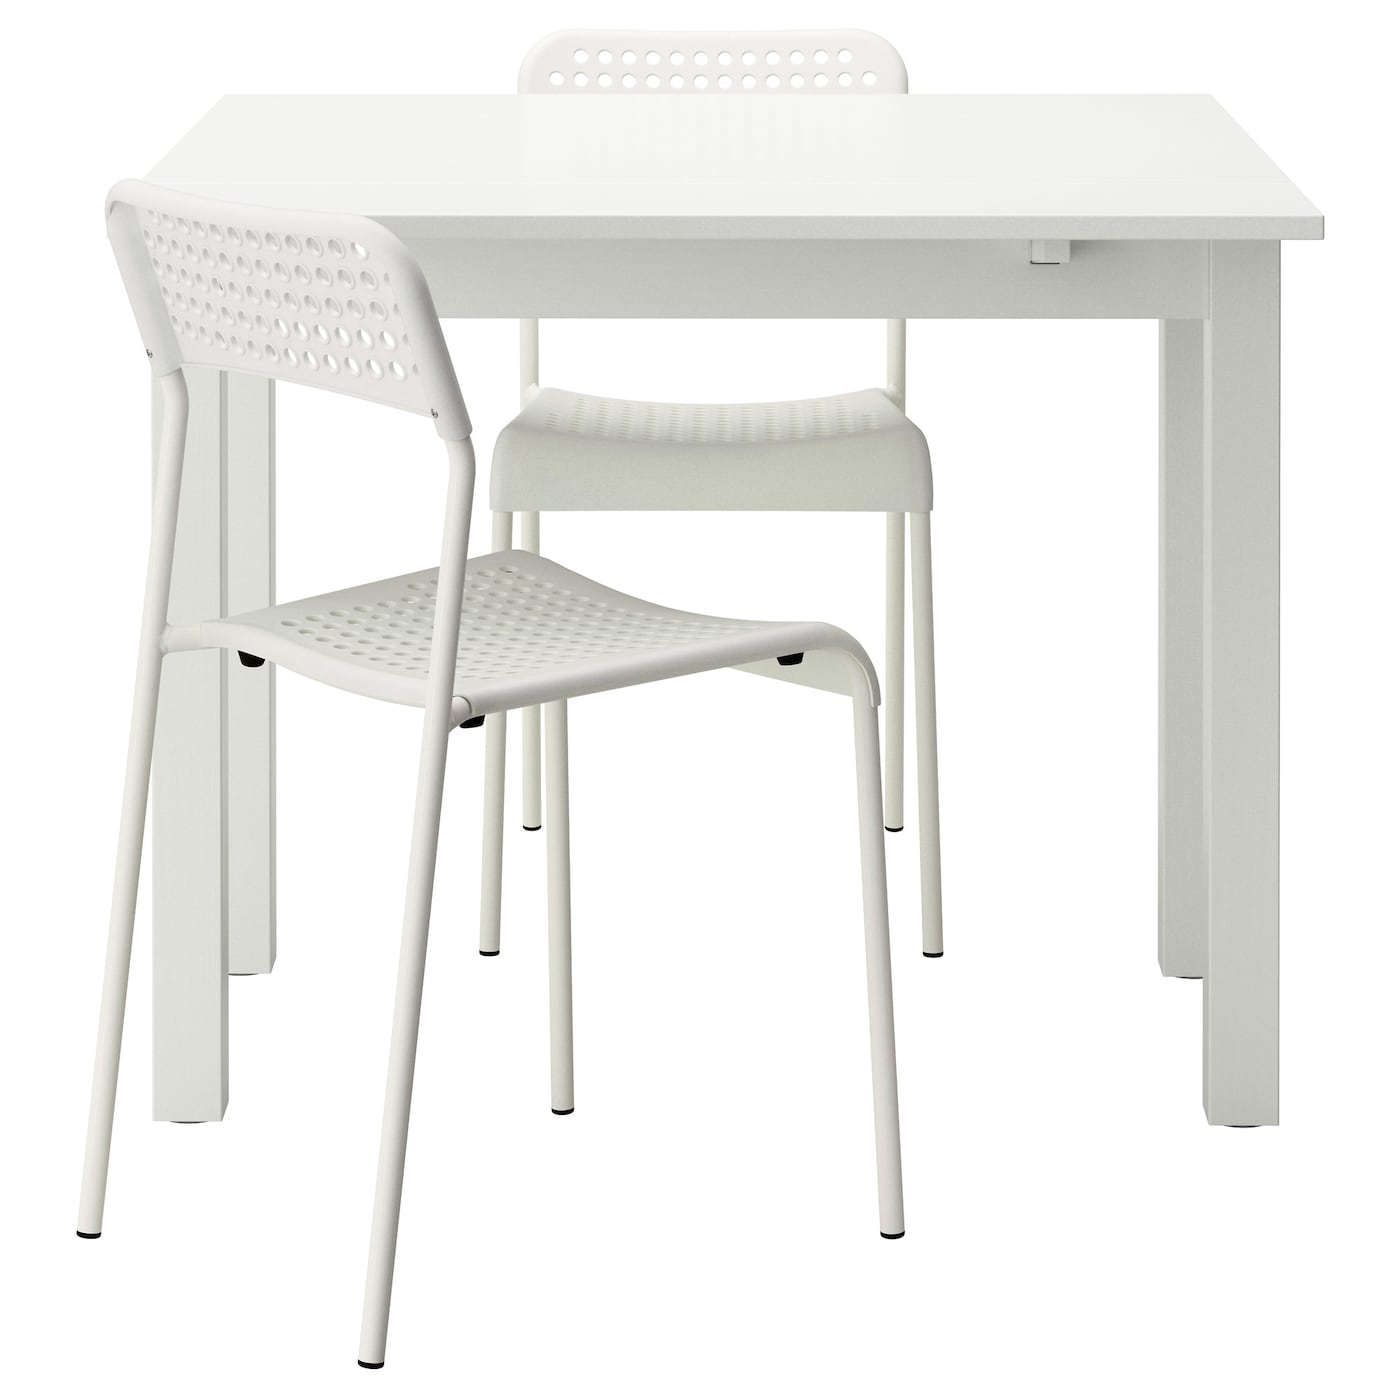 Bjursta adde table and 2 chairs white 50 cm ikea for Table en pin ikea